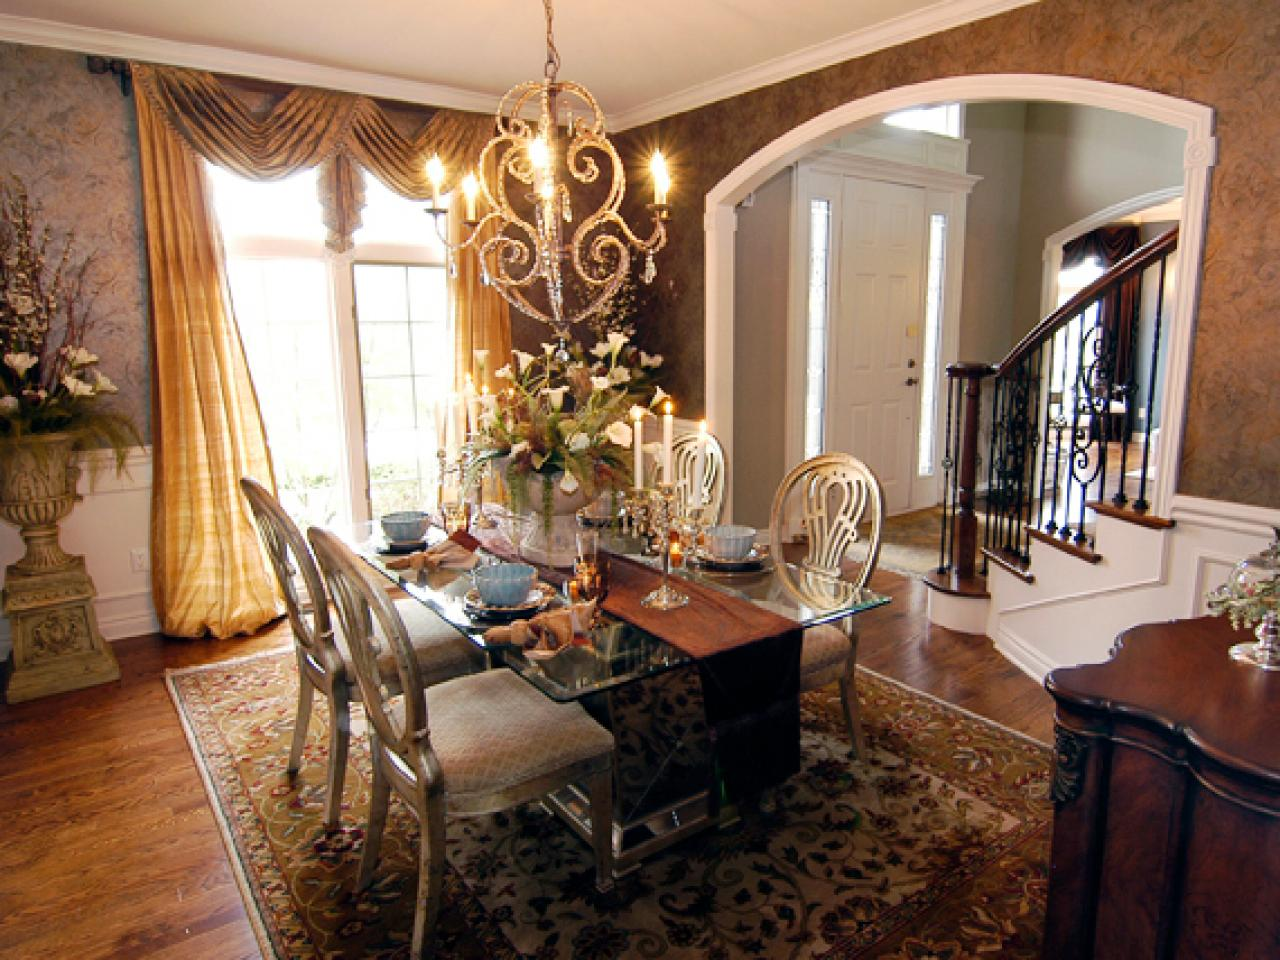 Budget friendly dining room updates from expert designers for Dining room design ideas photos